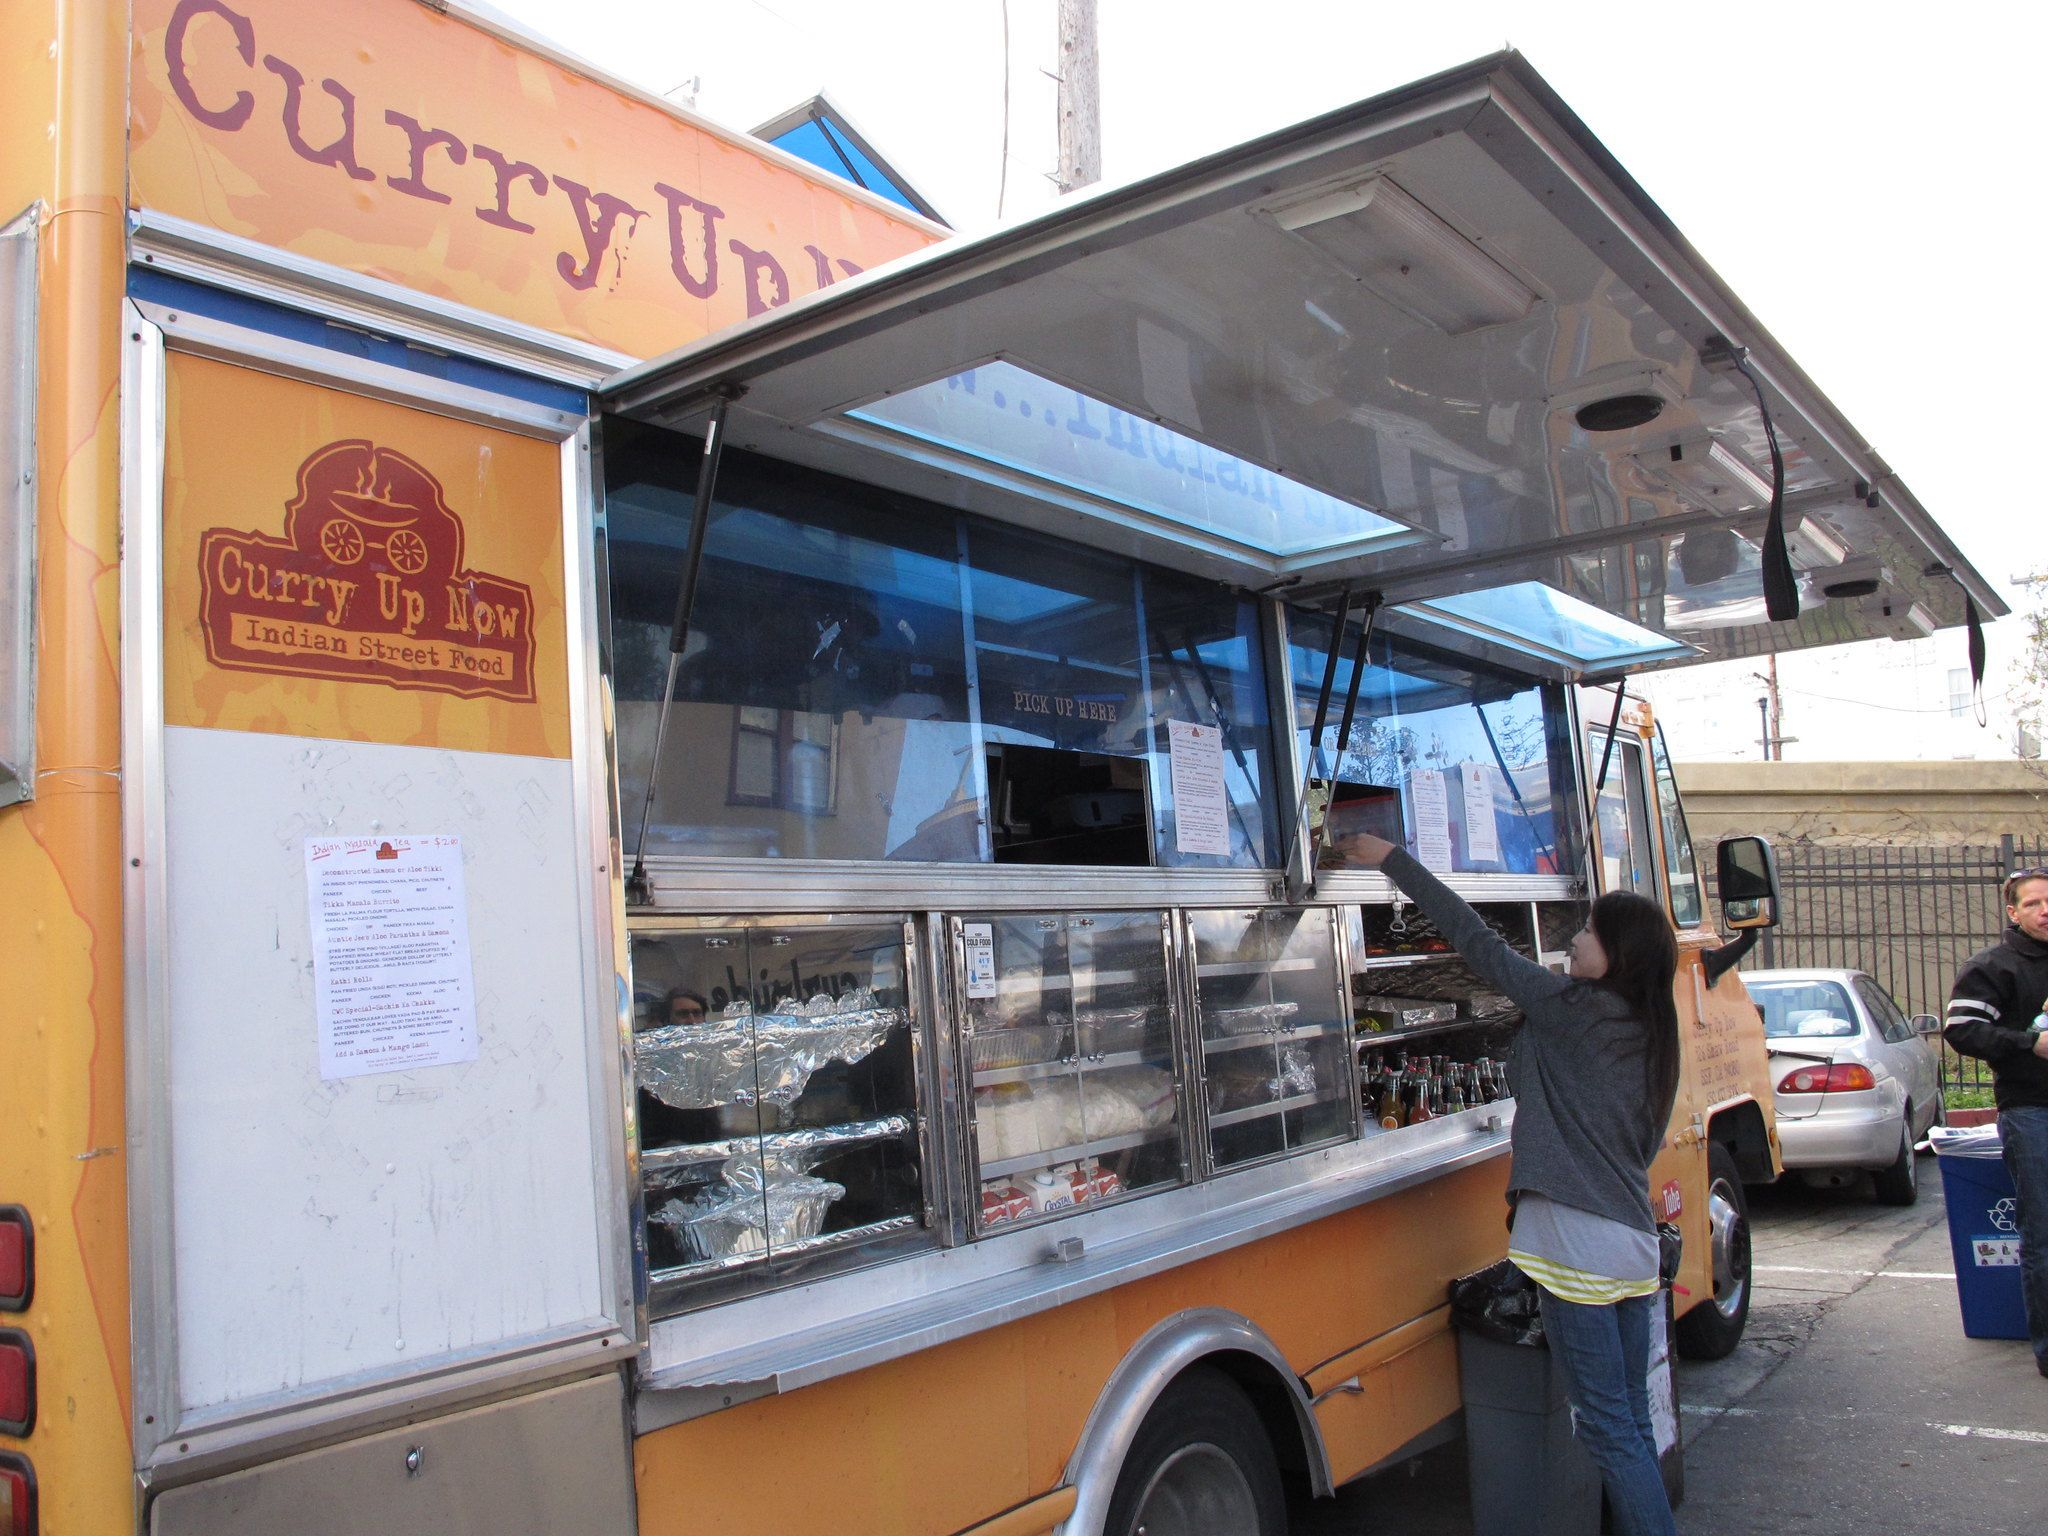 American Cuisine 10 San Francisco Best Food Trucks that You Have to Try